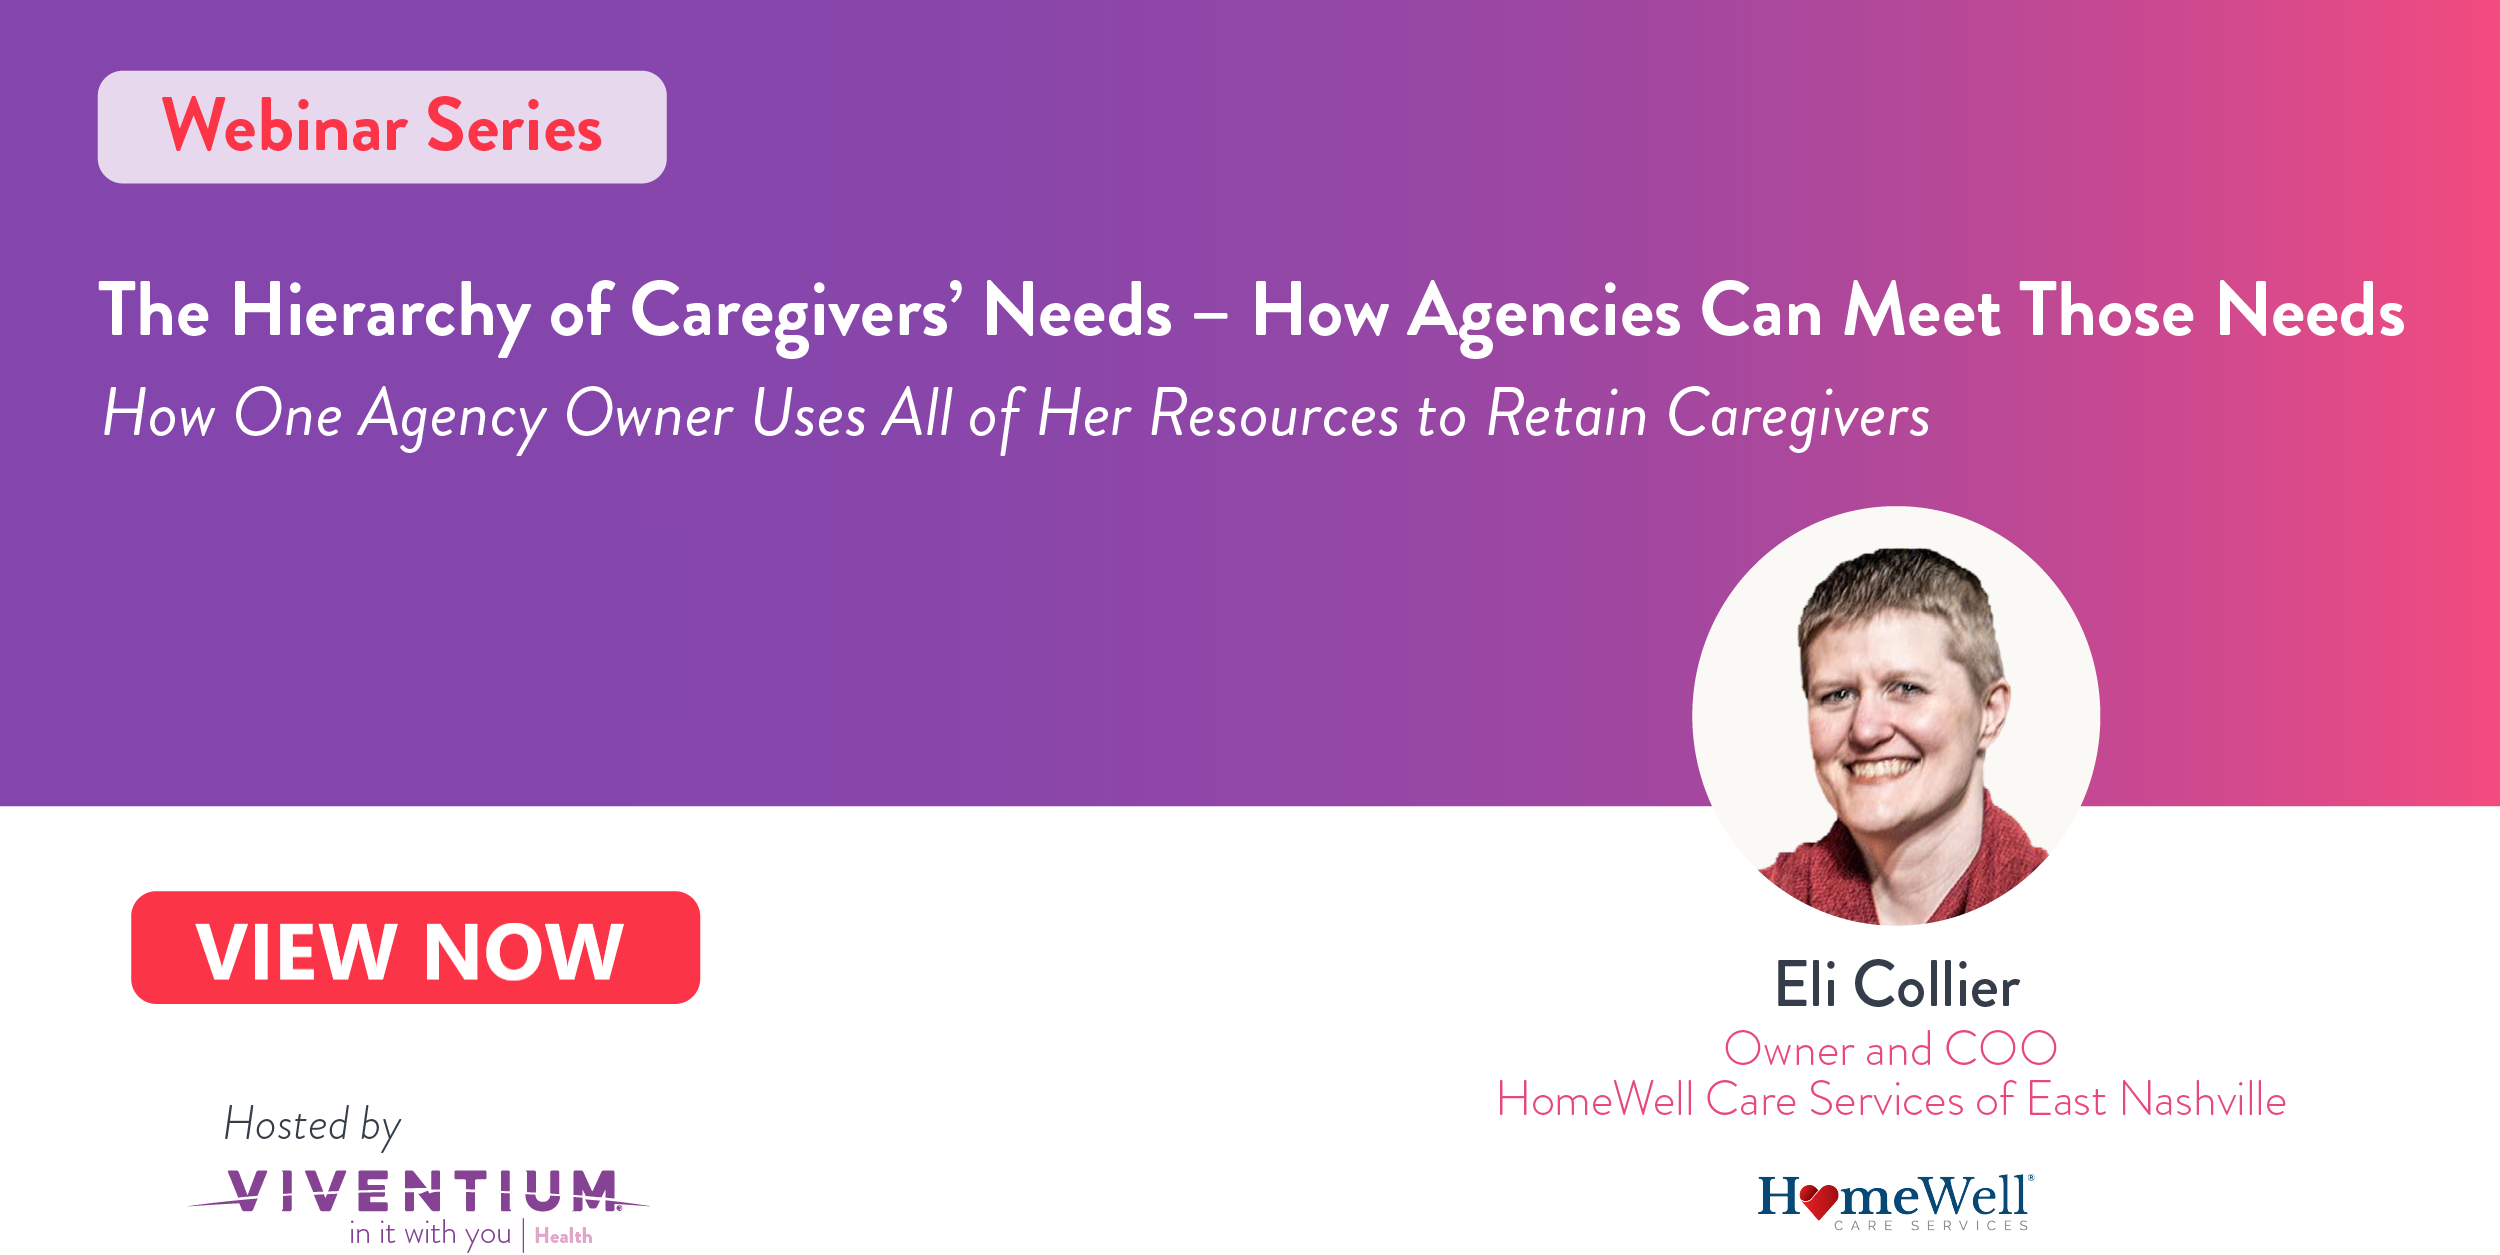 The Hierarchy of Caregivers Needs Part 2 - Final